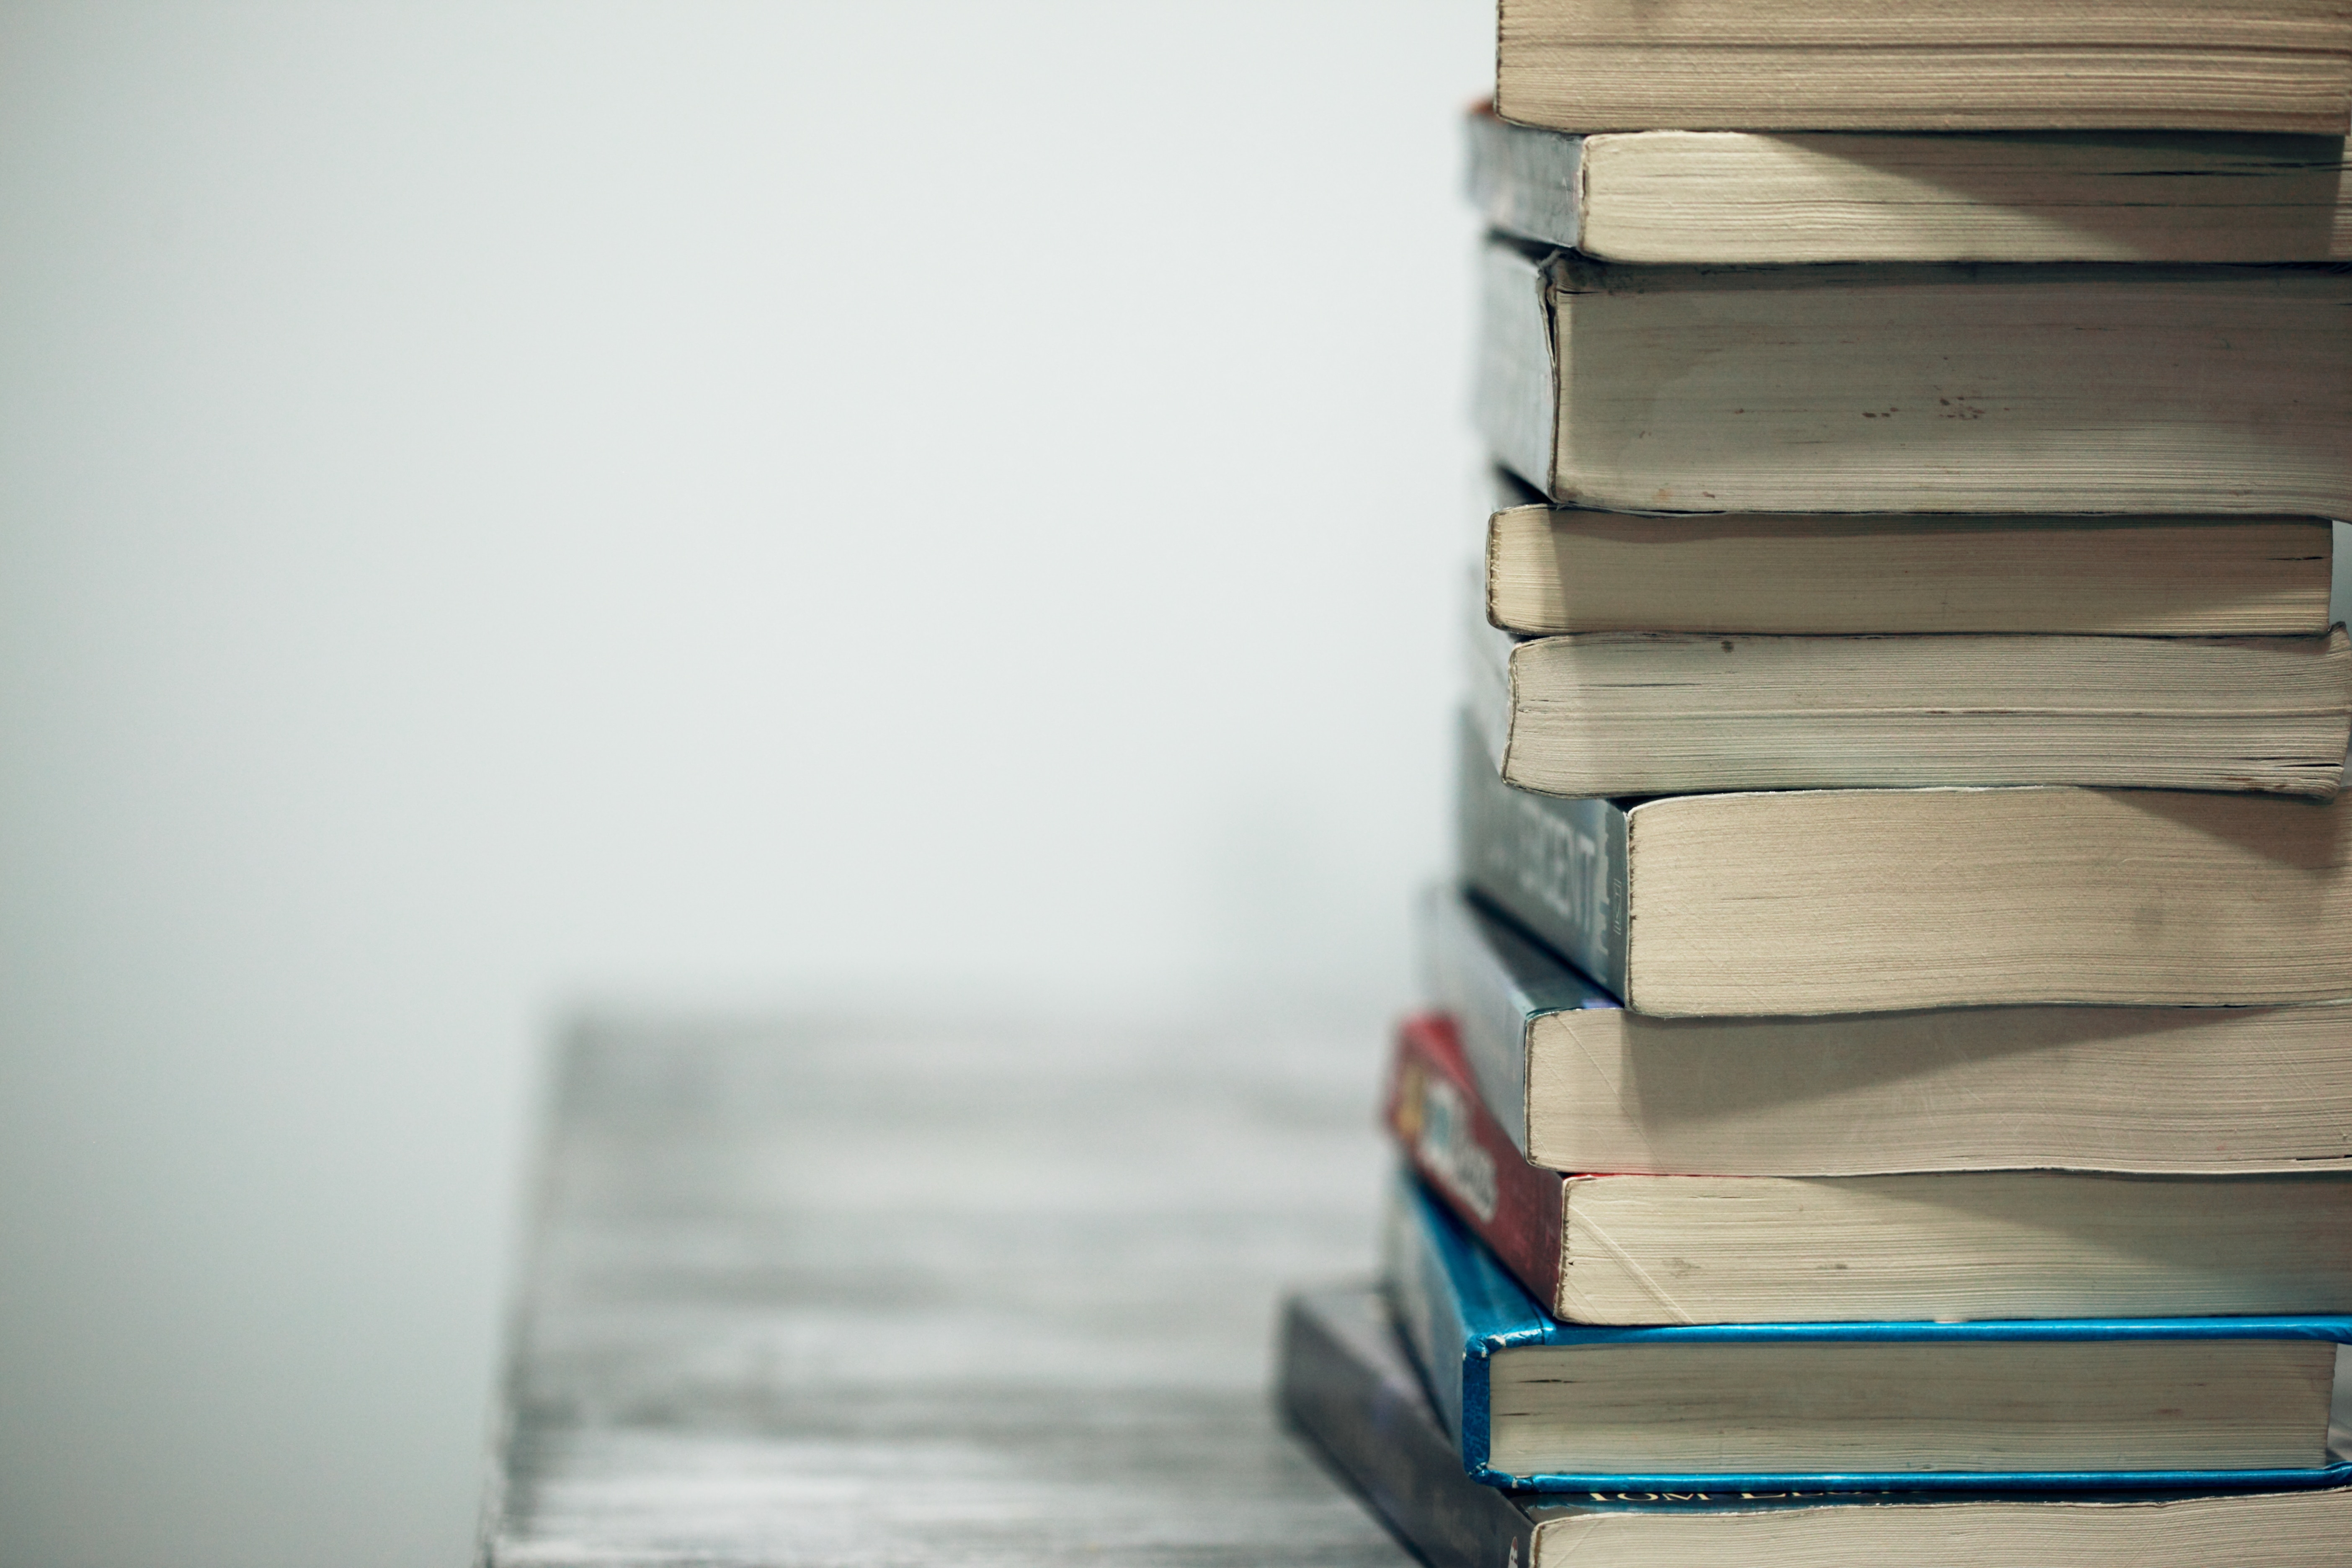 Image of a stack of books, decorative